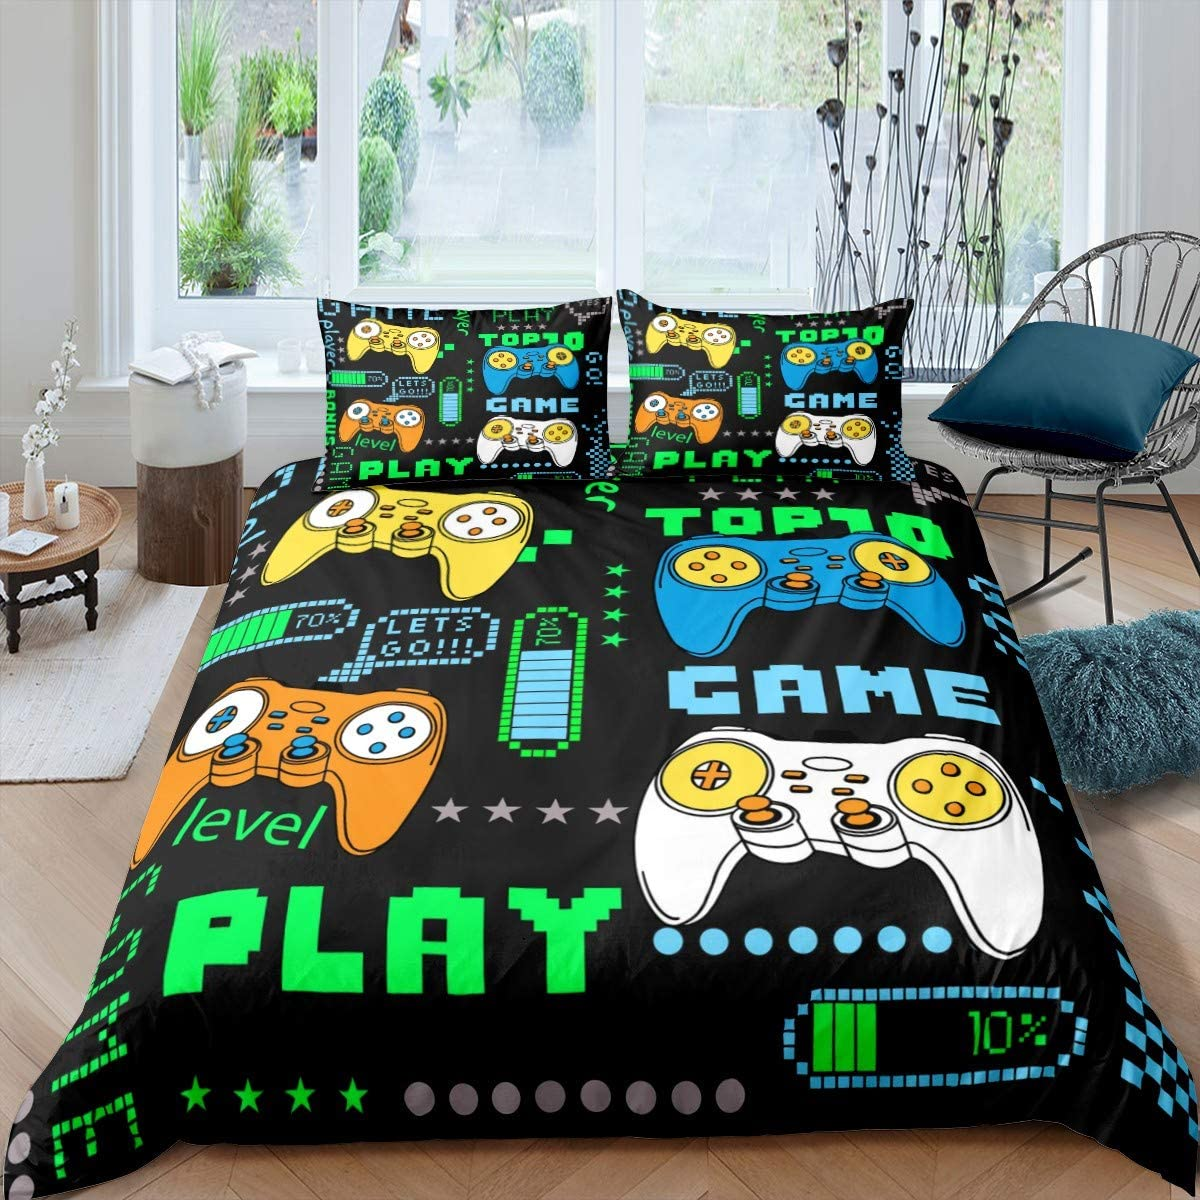 Gamepad Bedding Set for Kids Boys Girls Teens Twin Size Modern Gamer Duvet Cover,Video Game Comforter Cover Novelty Youth Game Action Buttons Decor Printed Bedspread Cover Green Yellow Black